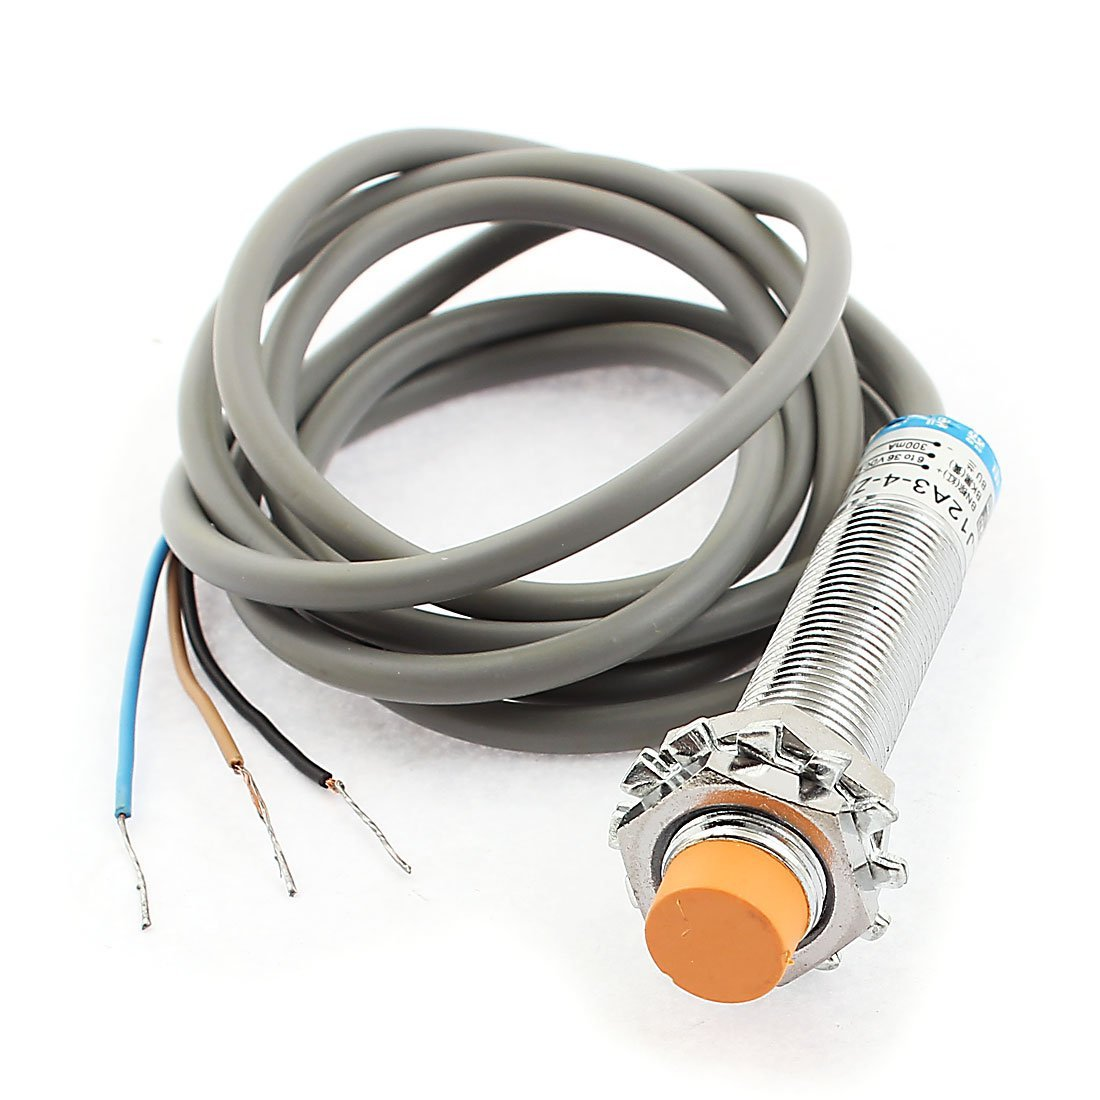 Cheap 5 Vdc Proximity Sensor Find Deals On Wire Configurations Are 2wire 3wire Npn Pnp 4wire And Get Quotations Uxcell Lj12a3 4 Z Bx No 6 36vdc Detection